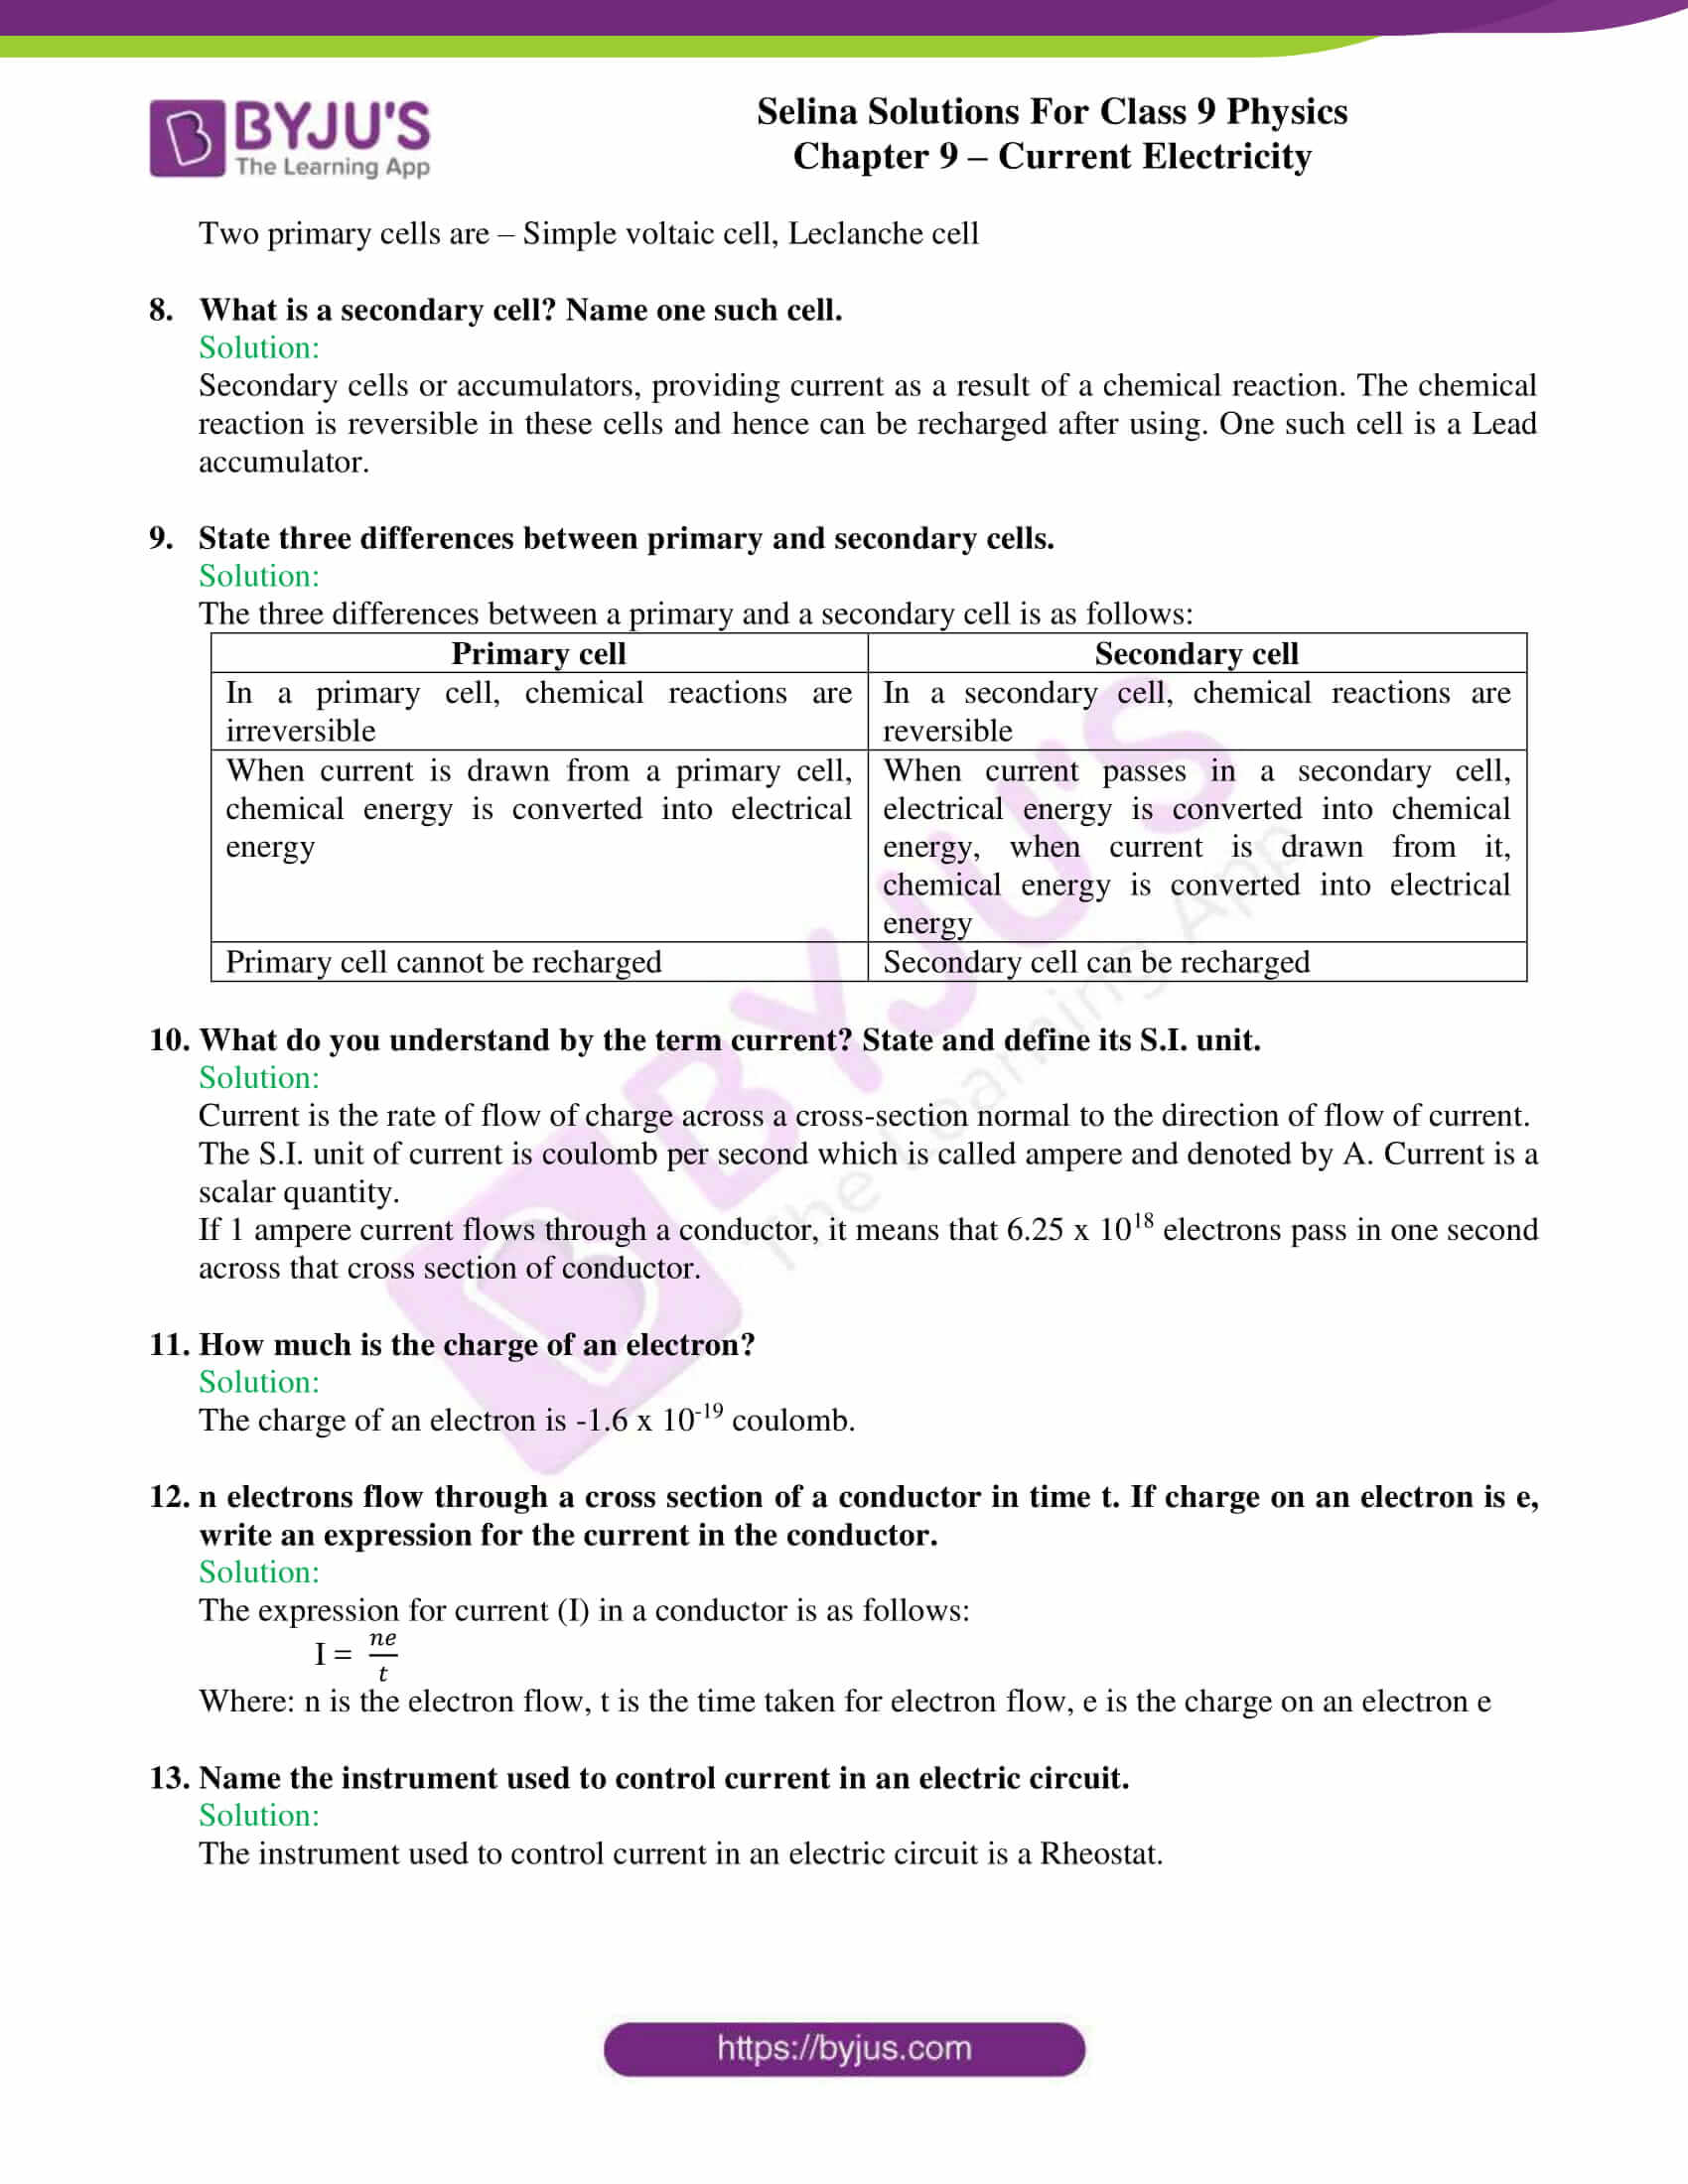 selina solutions class 9 physics chapter 9 Current Electricity part 02